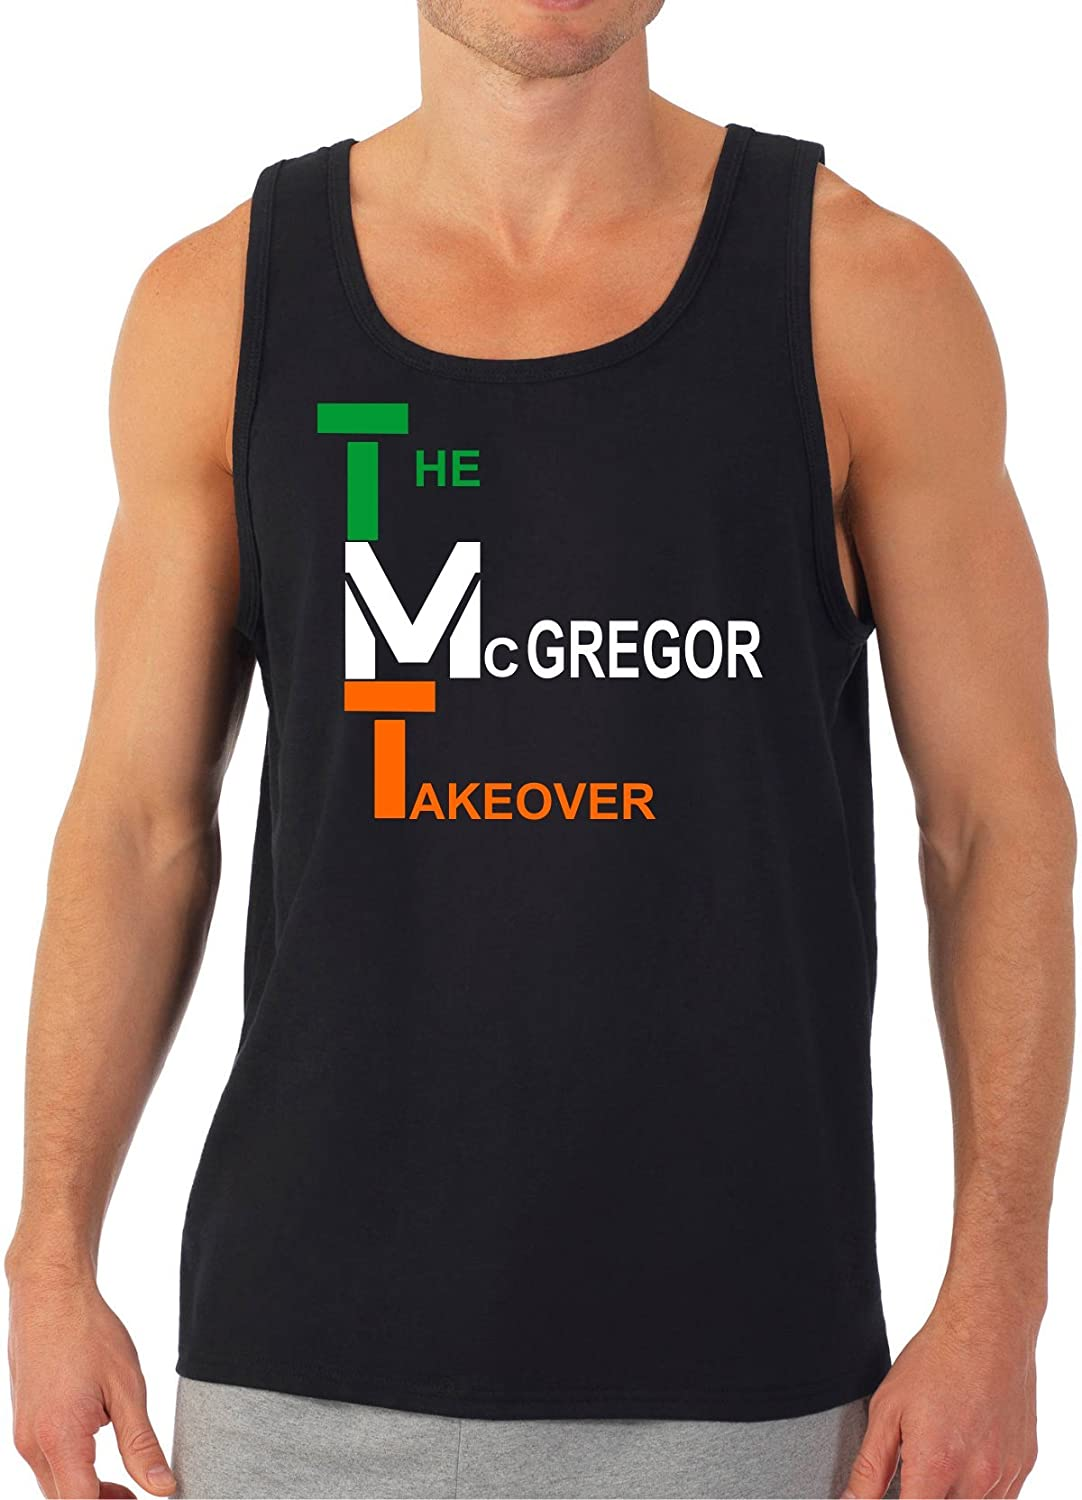 Conor McGregor McGregor Takeover Vertical Green-Orange 2 Tank Top